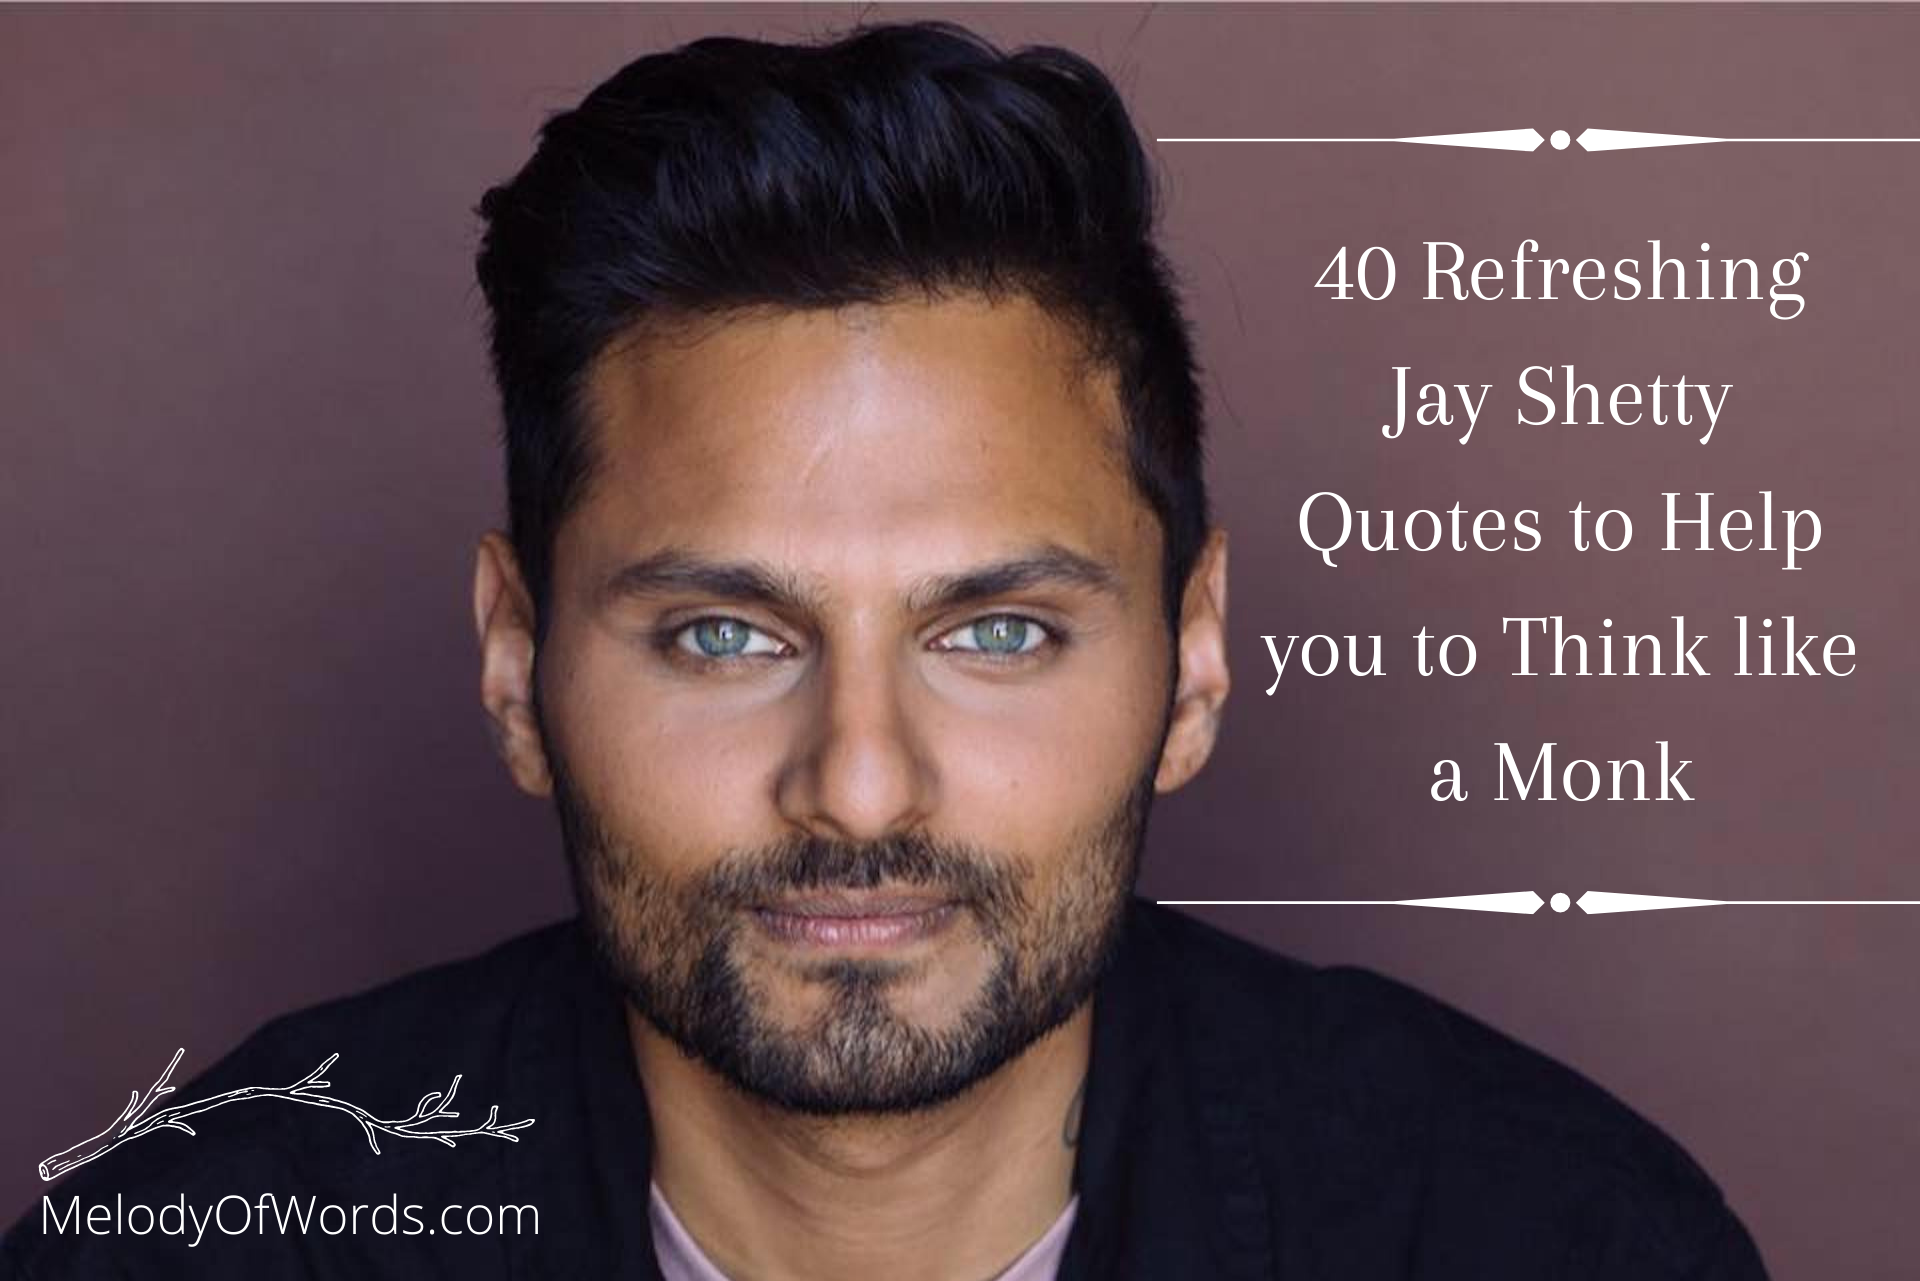 Refreshing Jay Shetty Quotes to Help you to Think like a Monk